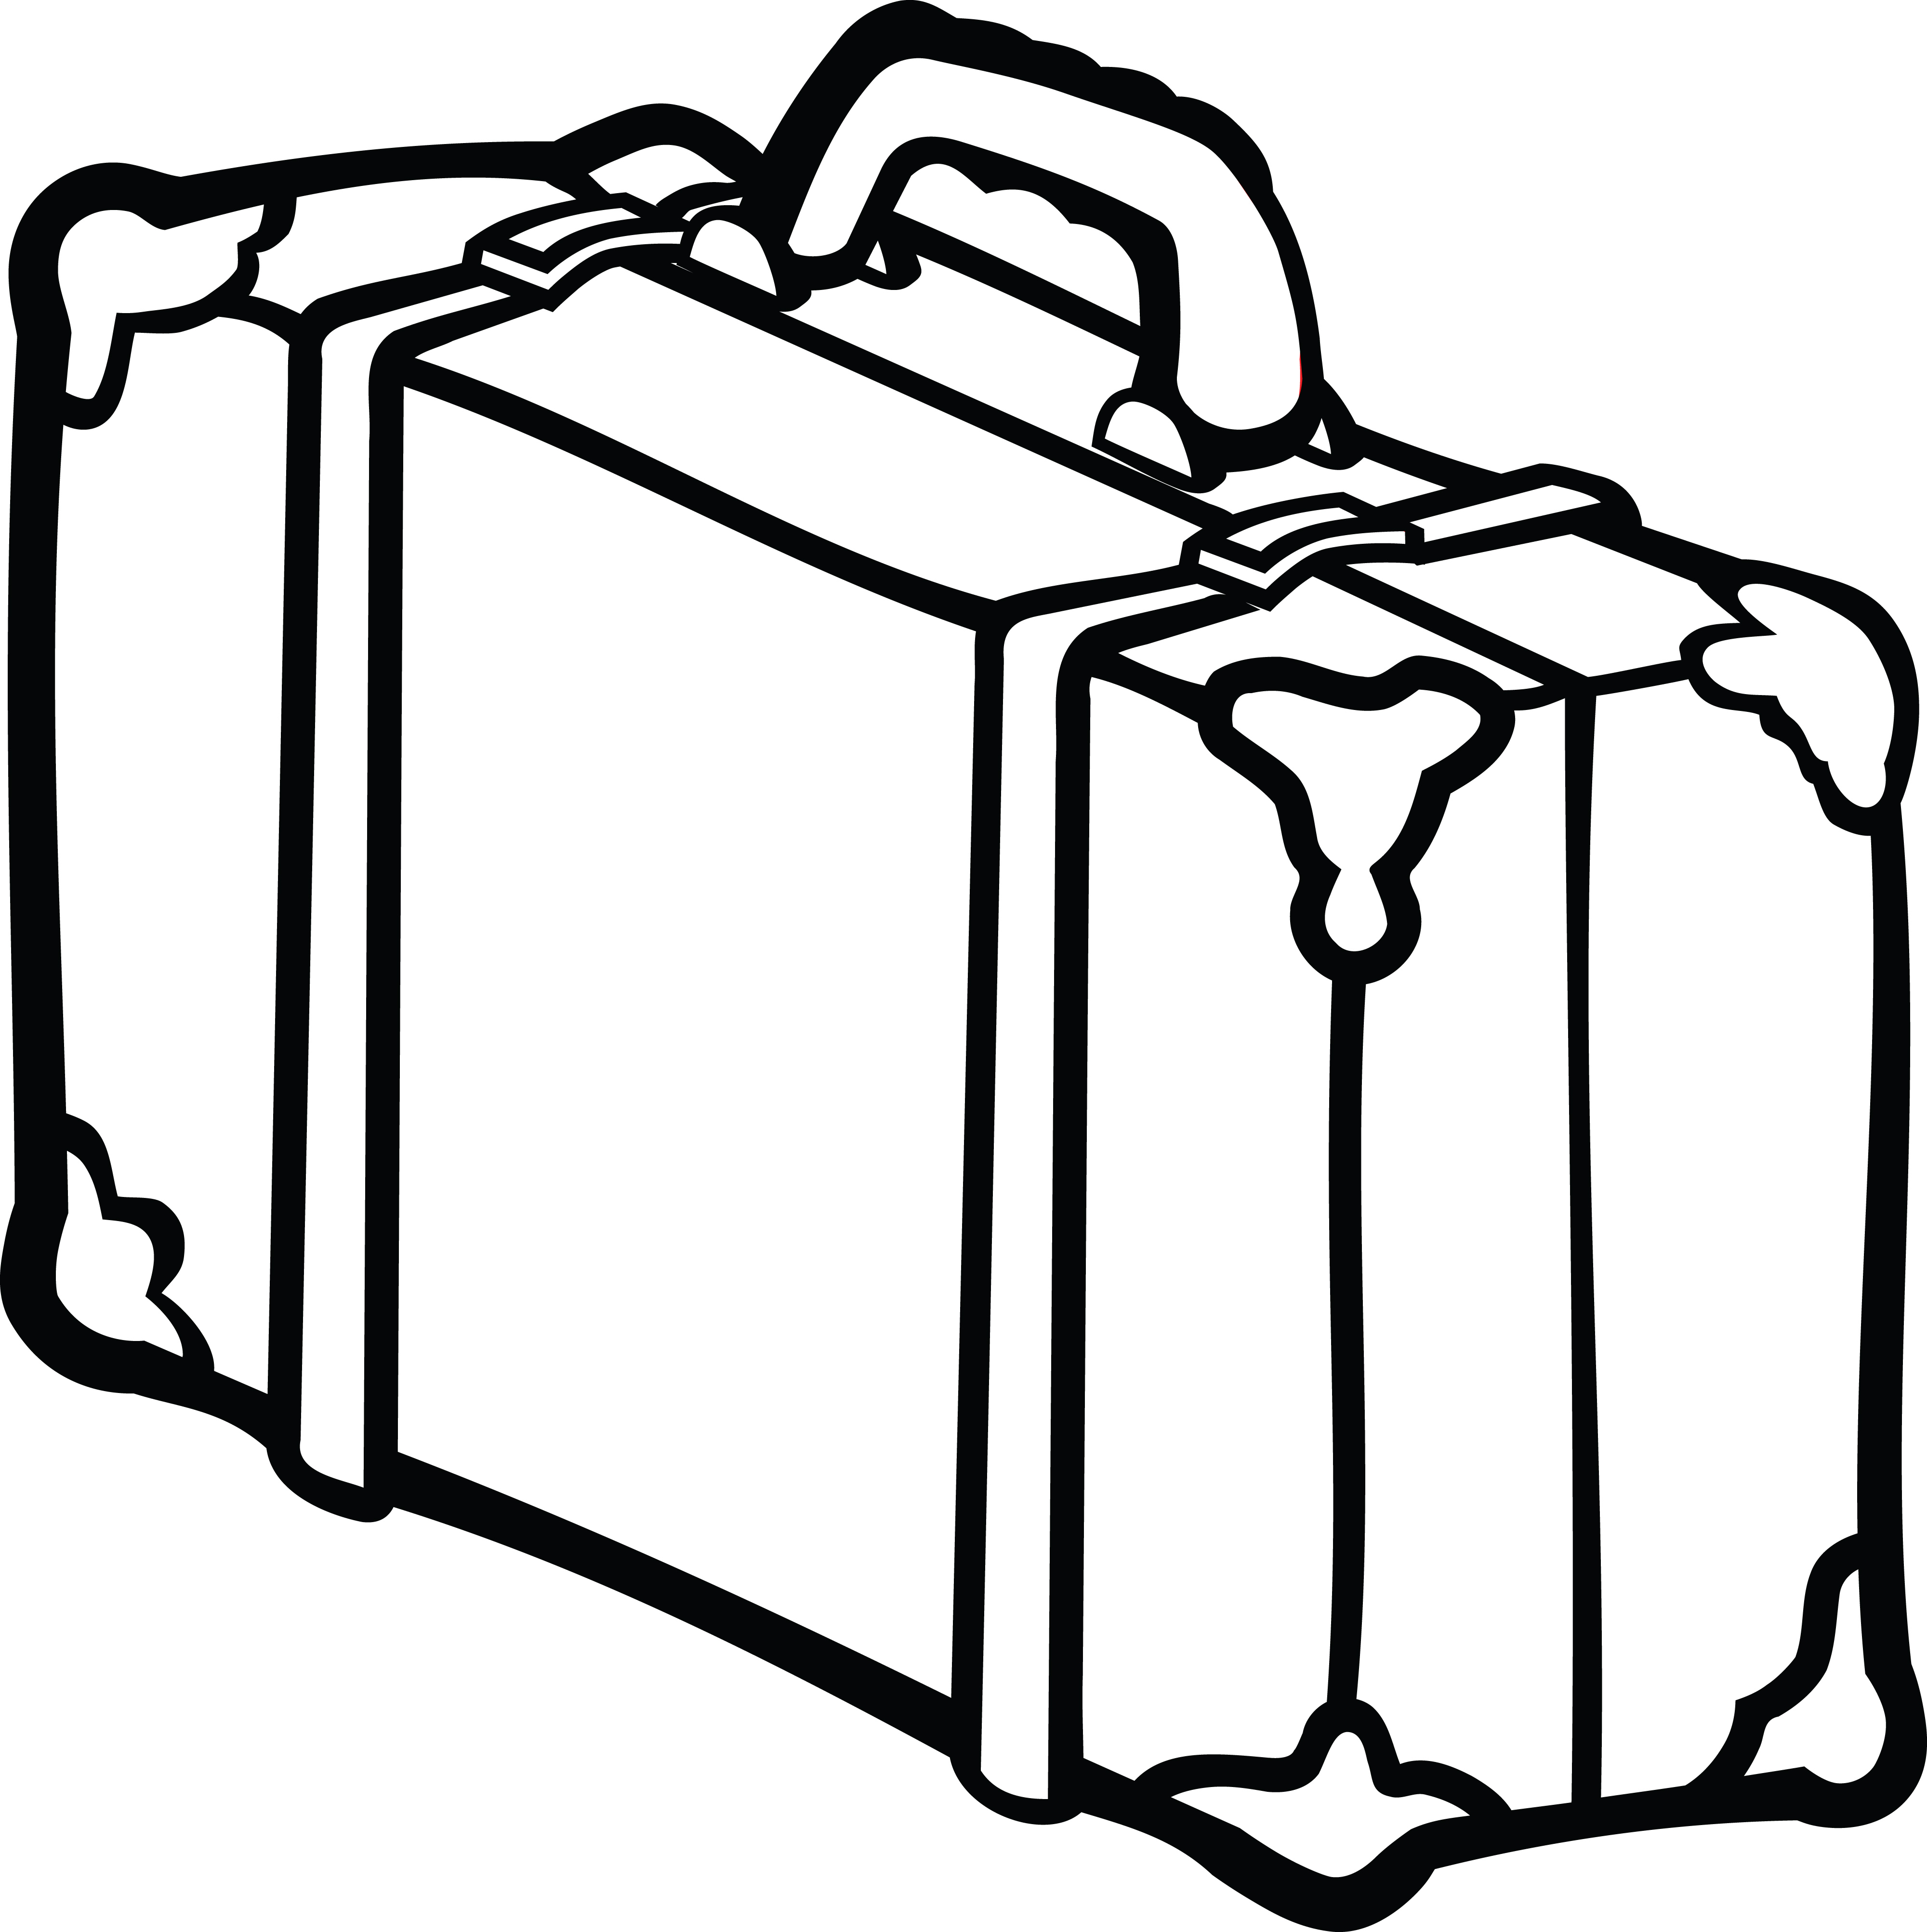 Free Clipart Of A suitcase.